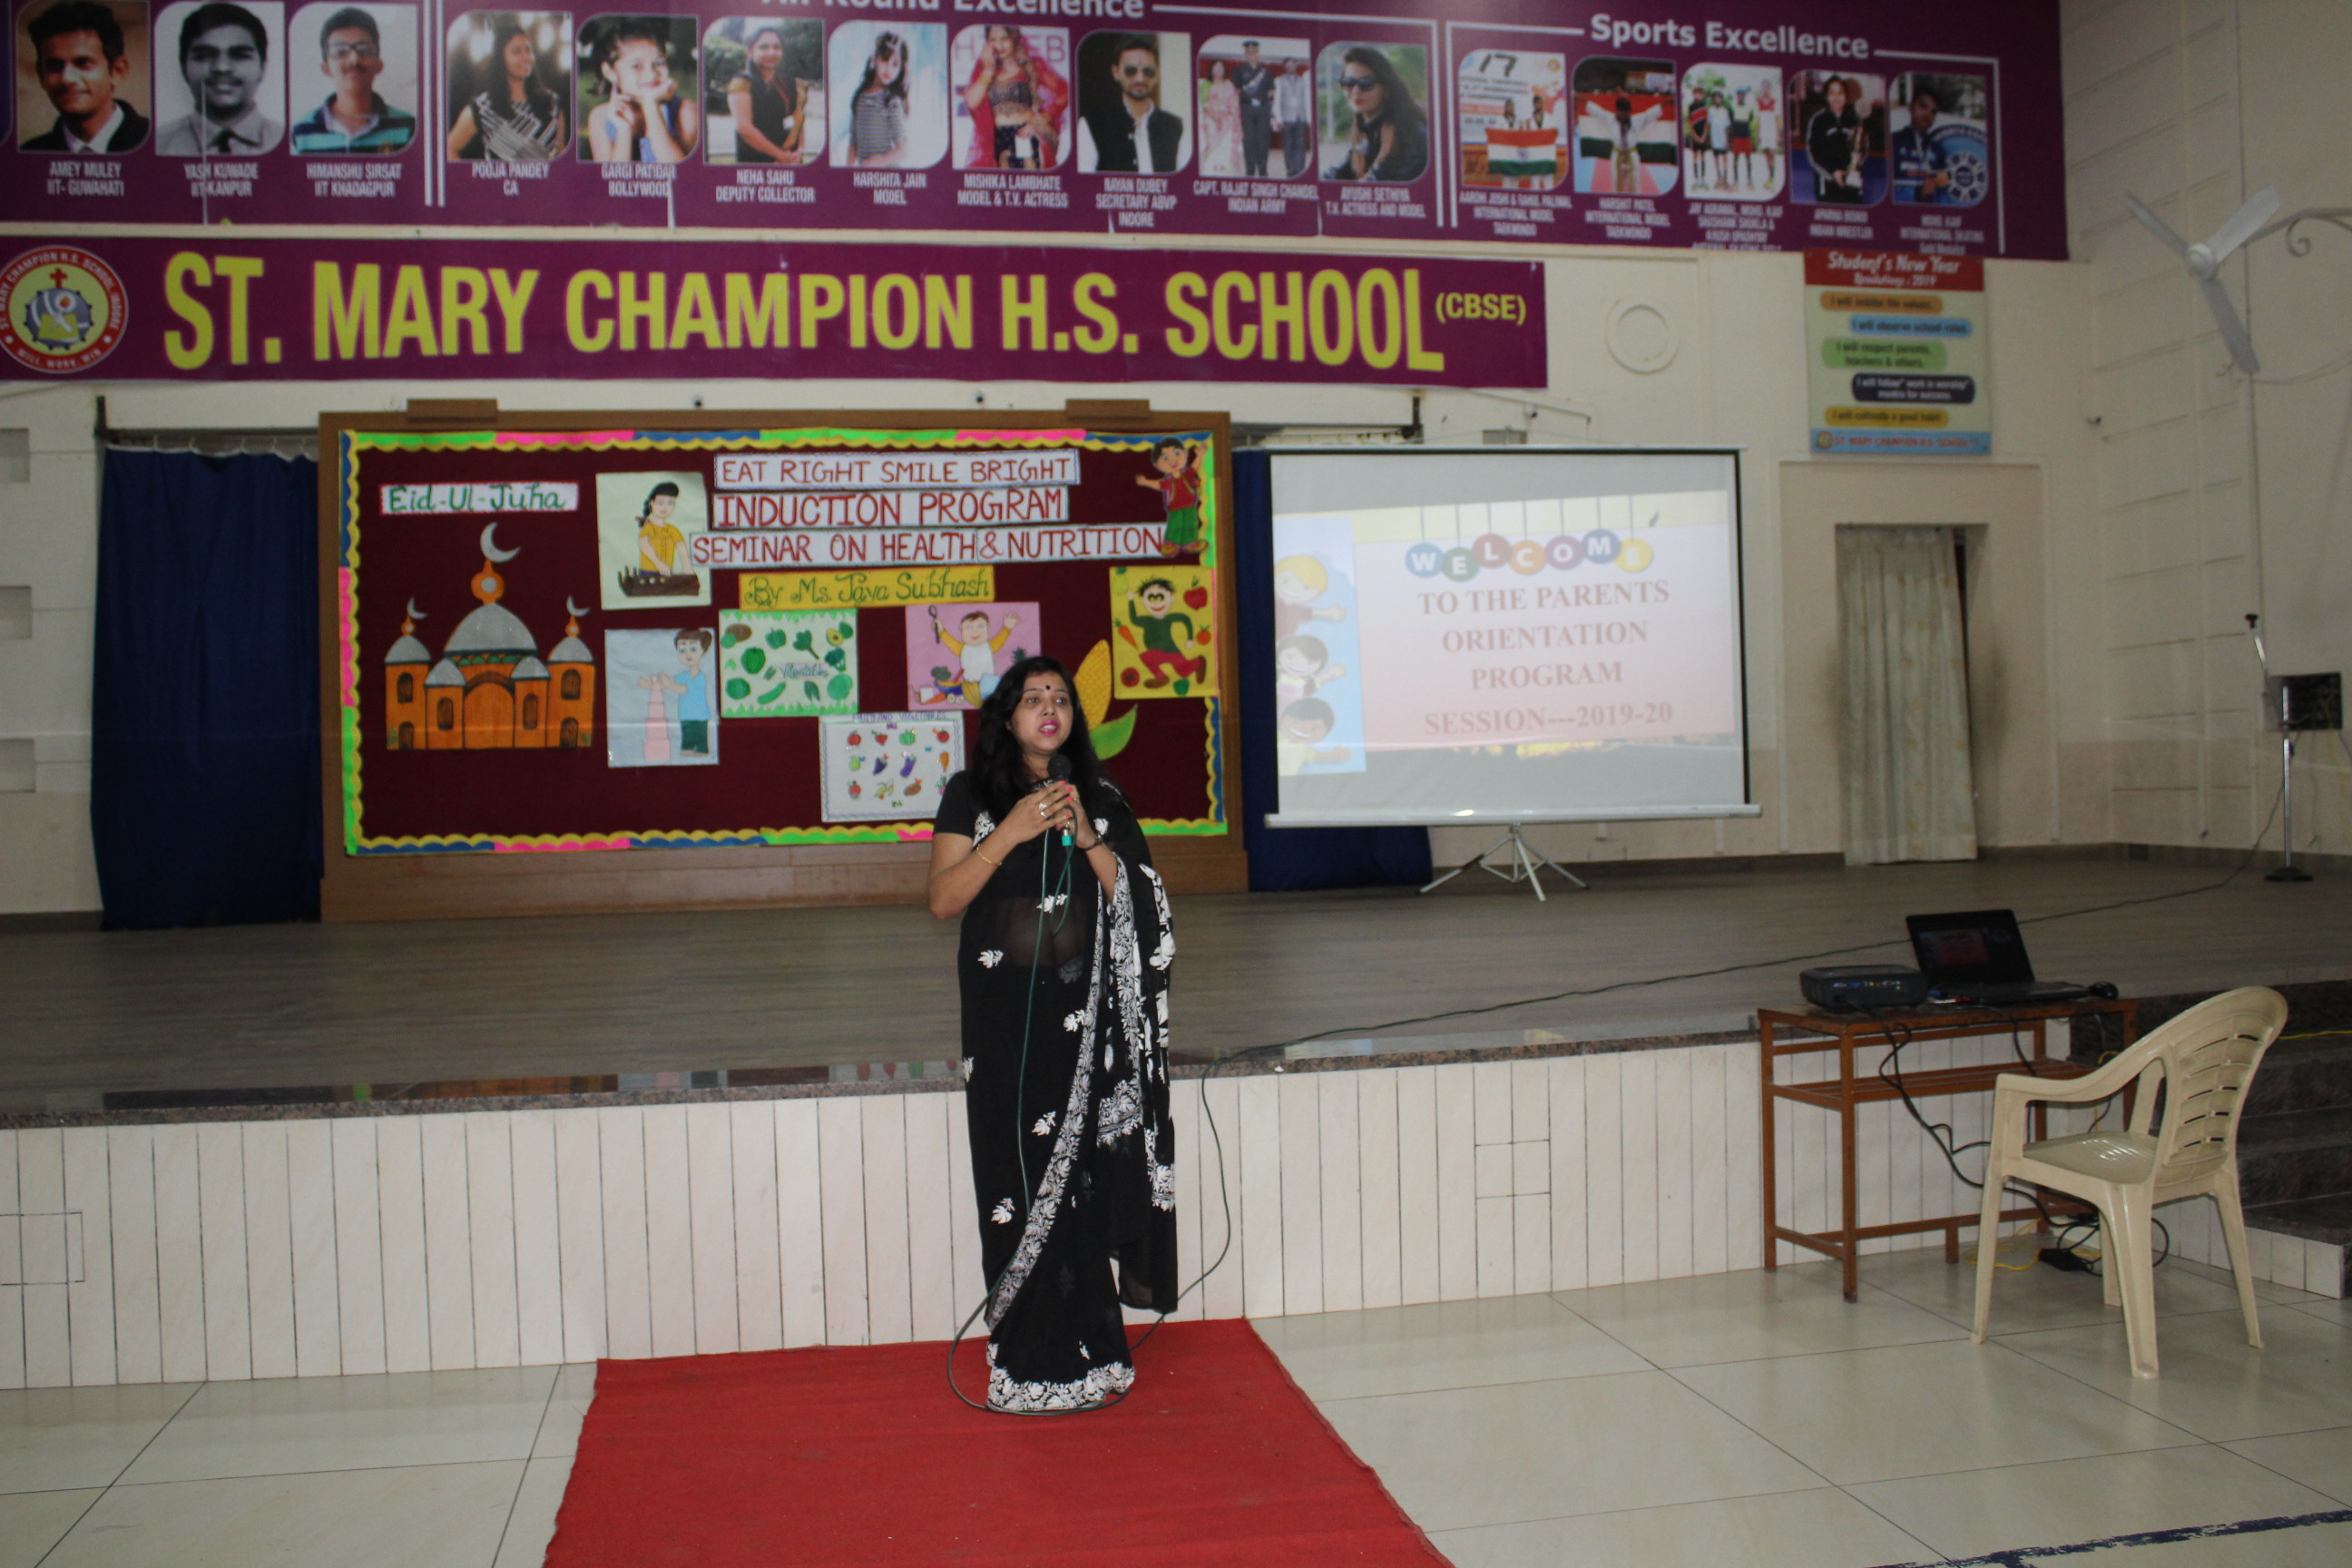 Health and Nutrition Seminar